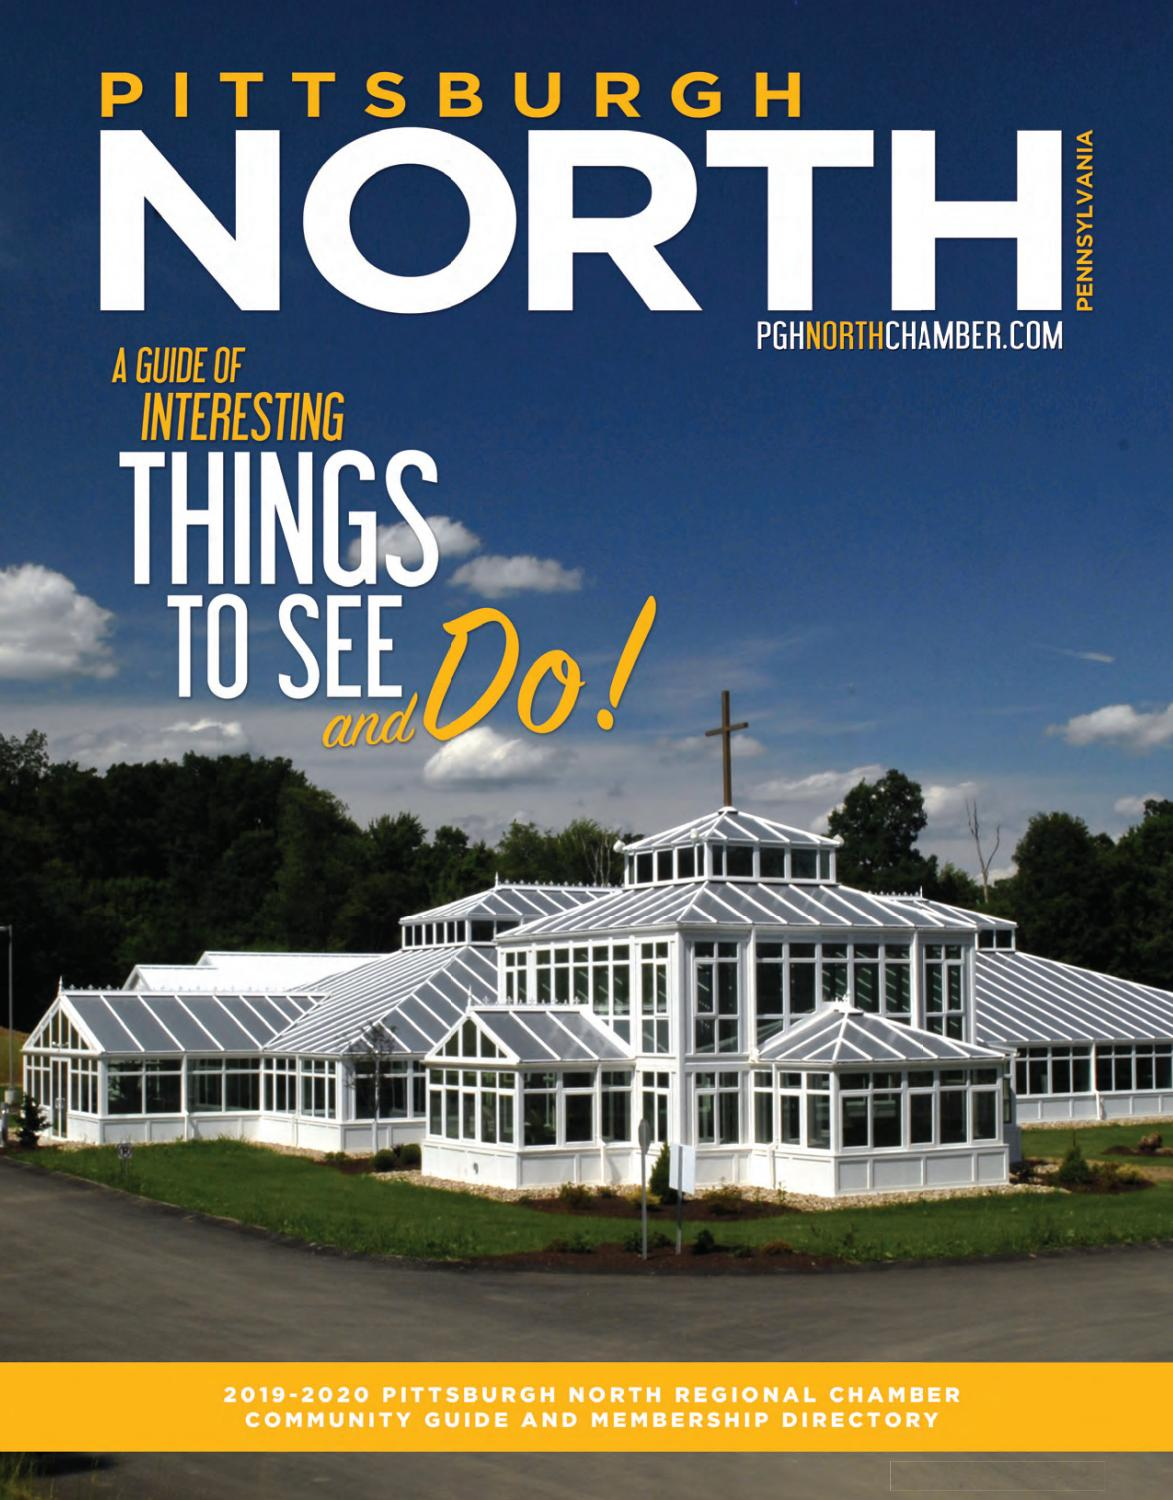 pittsburg north pa community profile by town square publications llc issuu pittsburg north pa community profile by